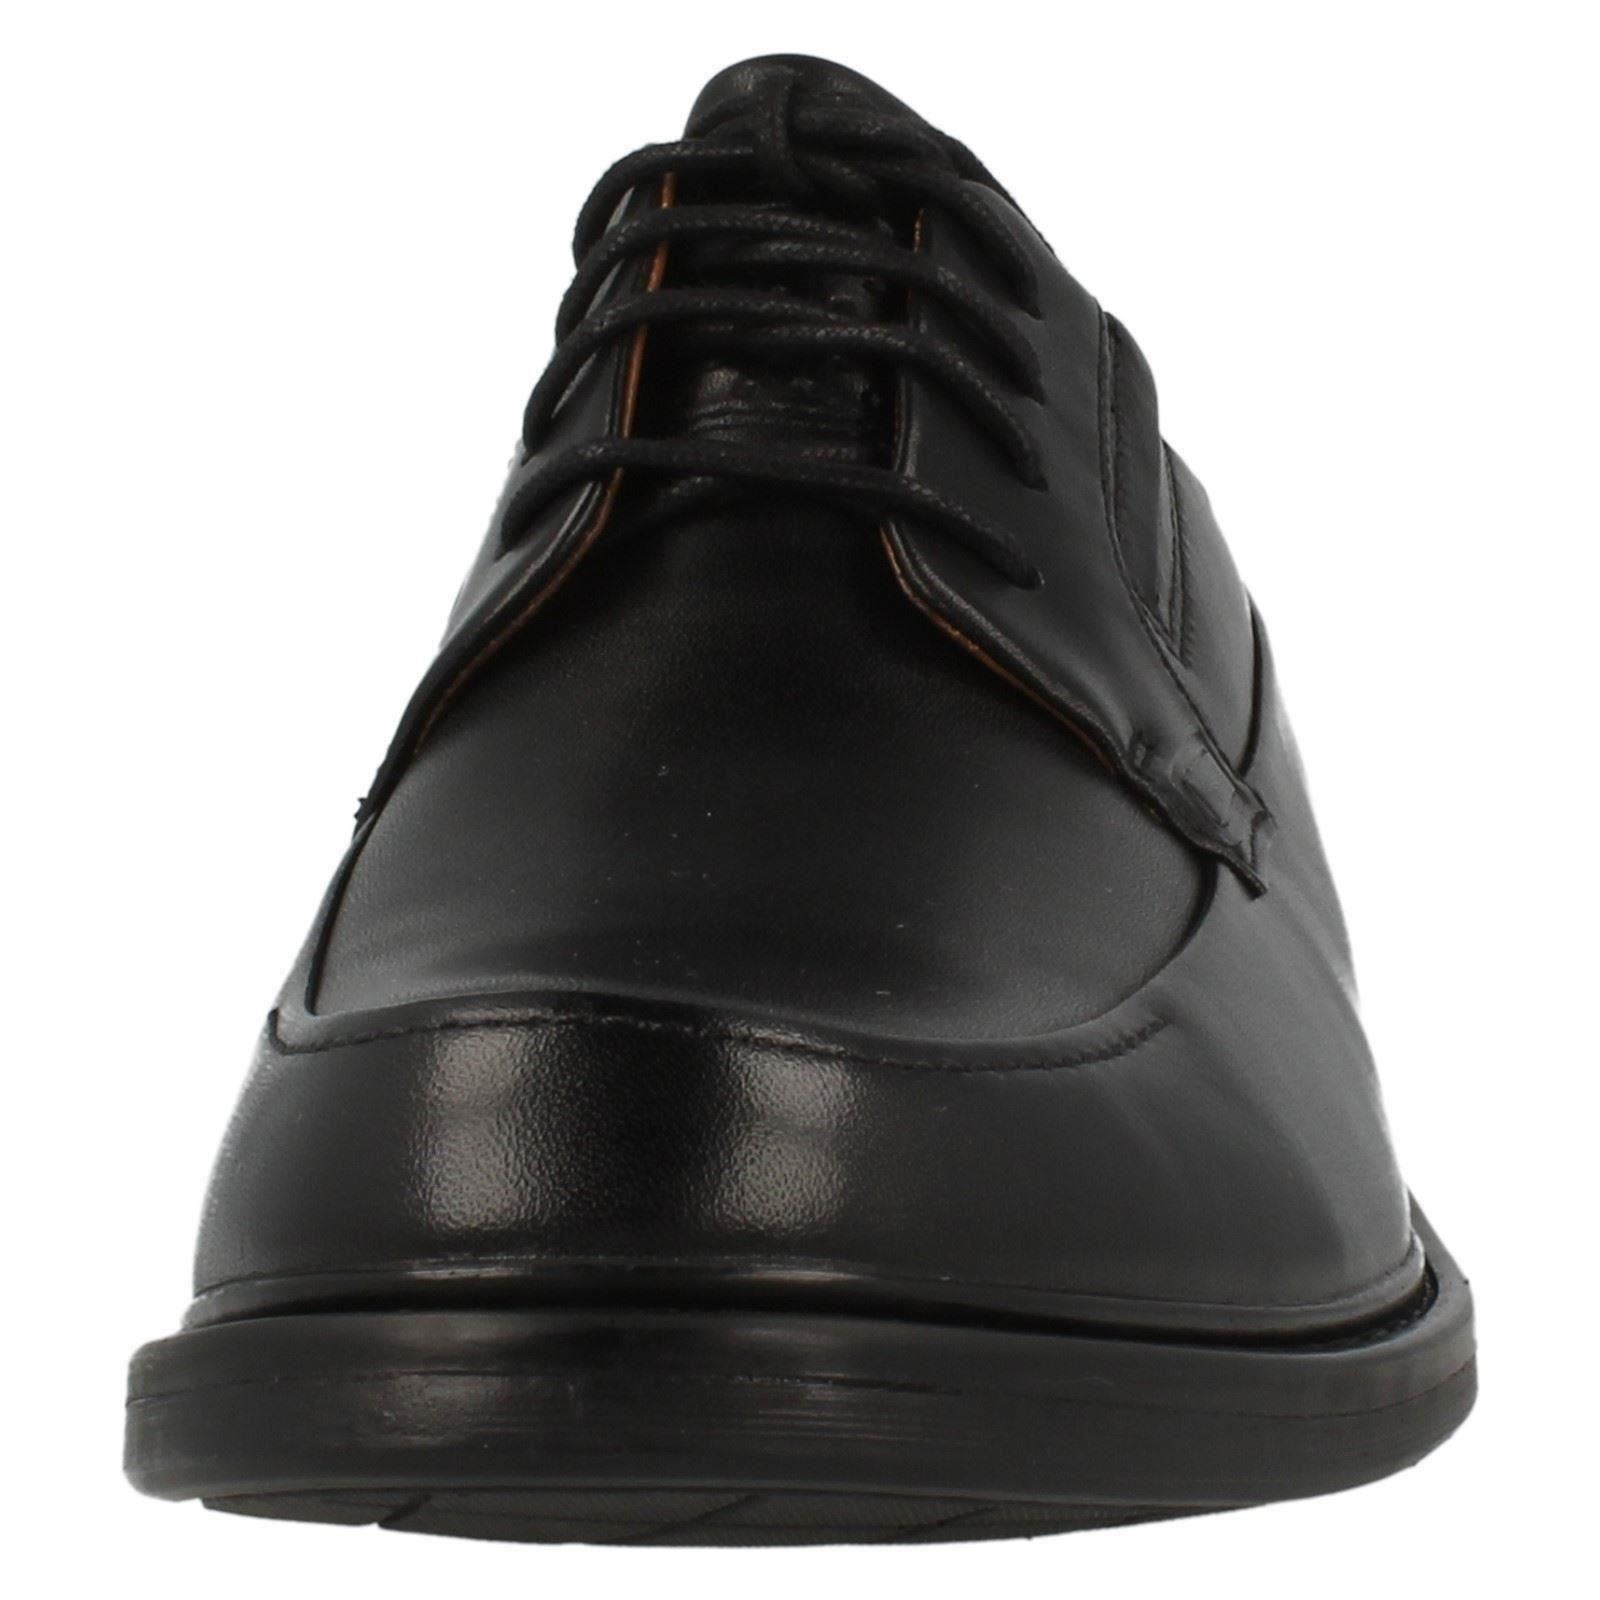 clarks active air vent mens shoes